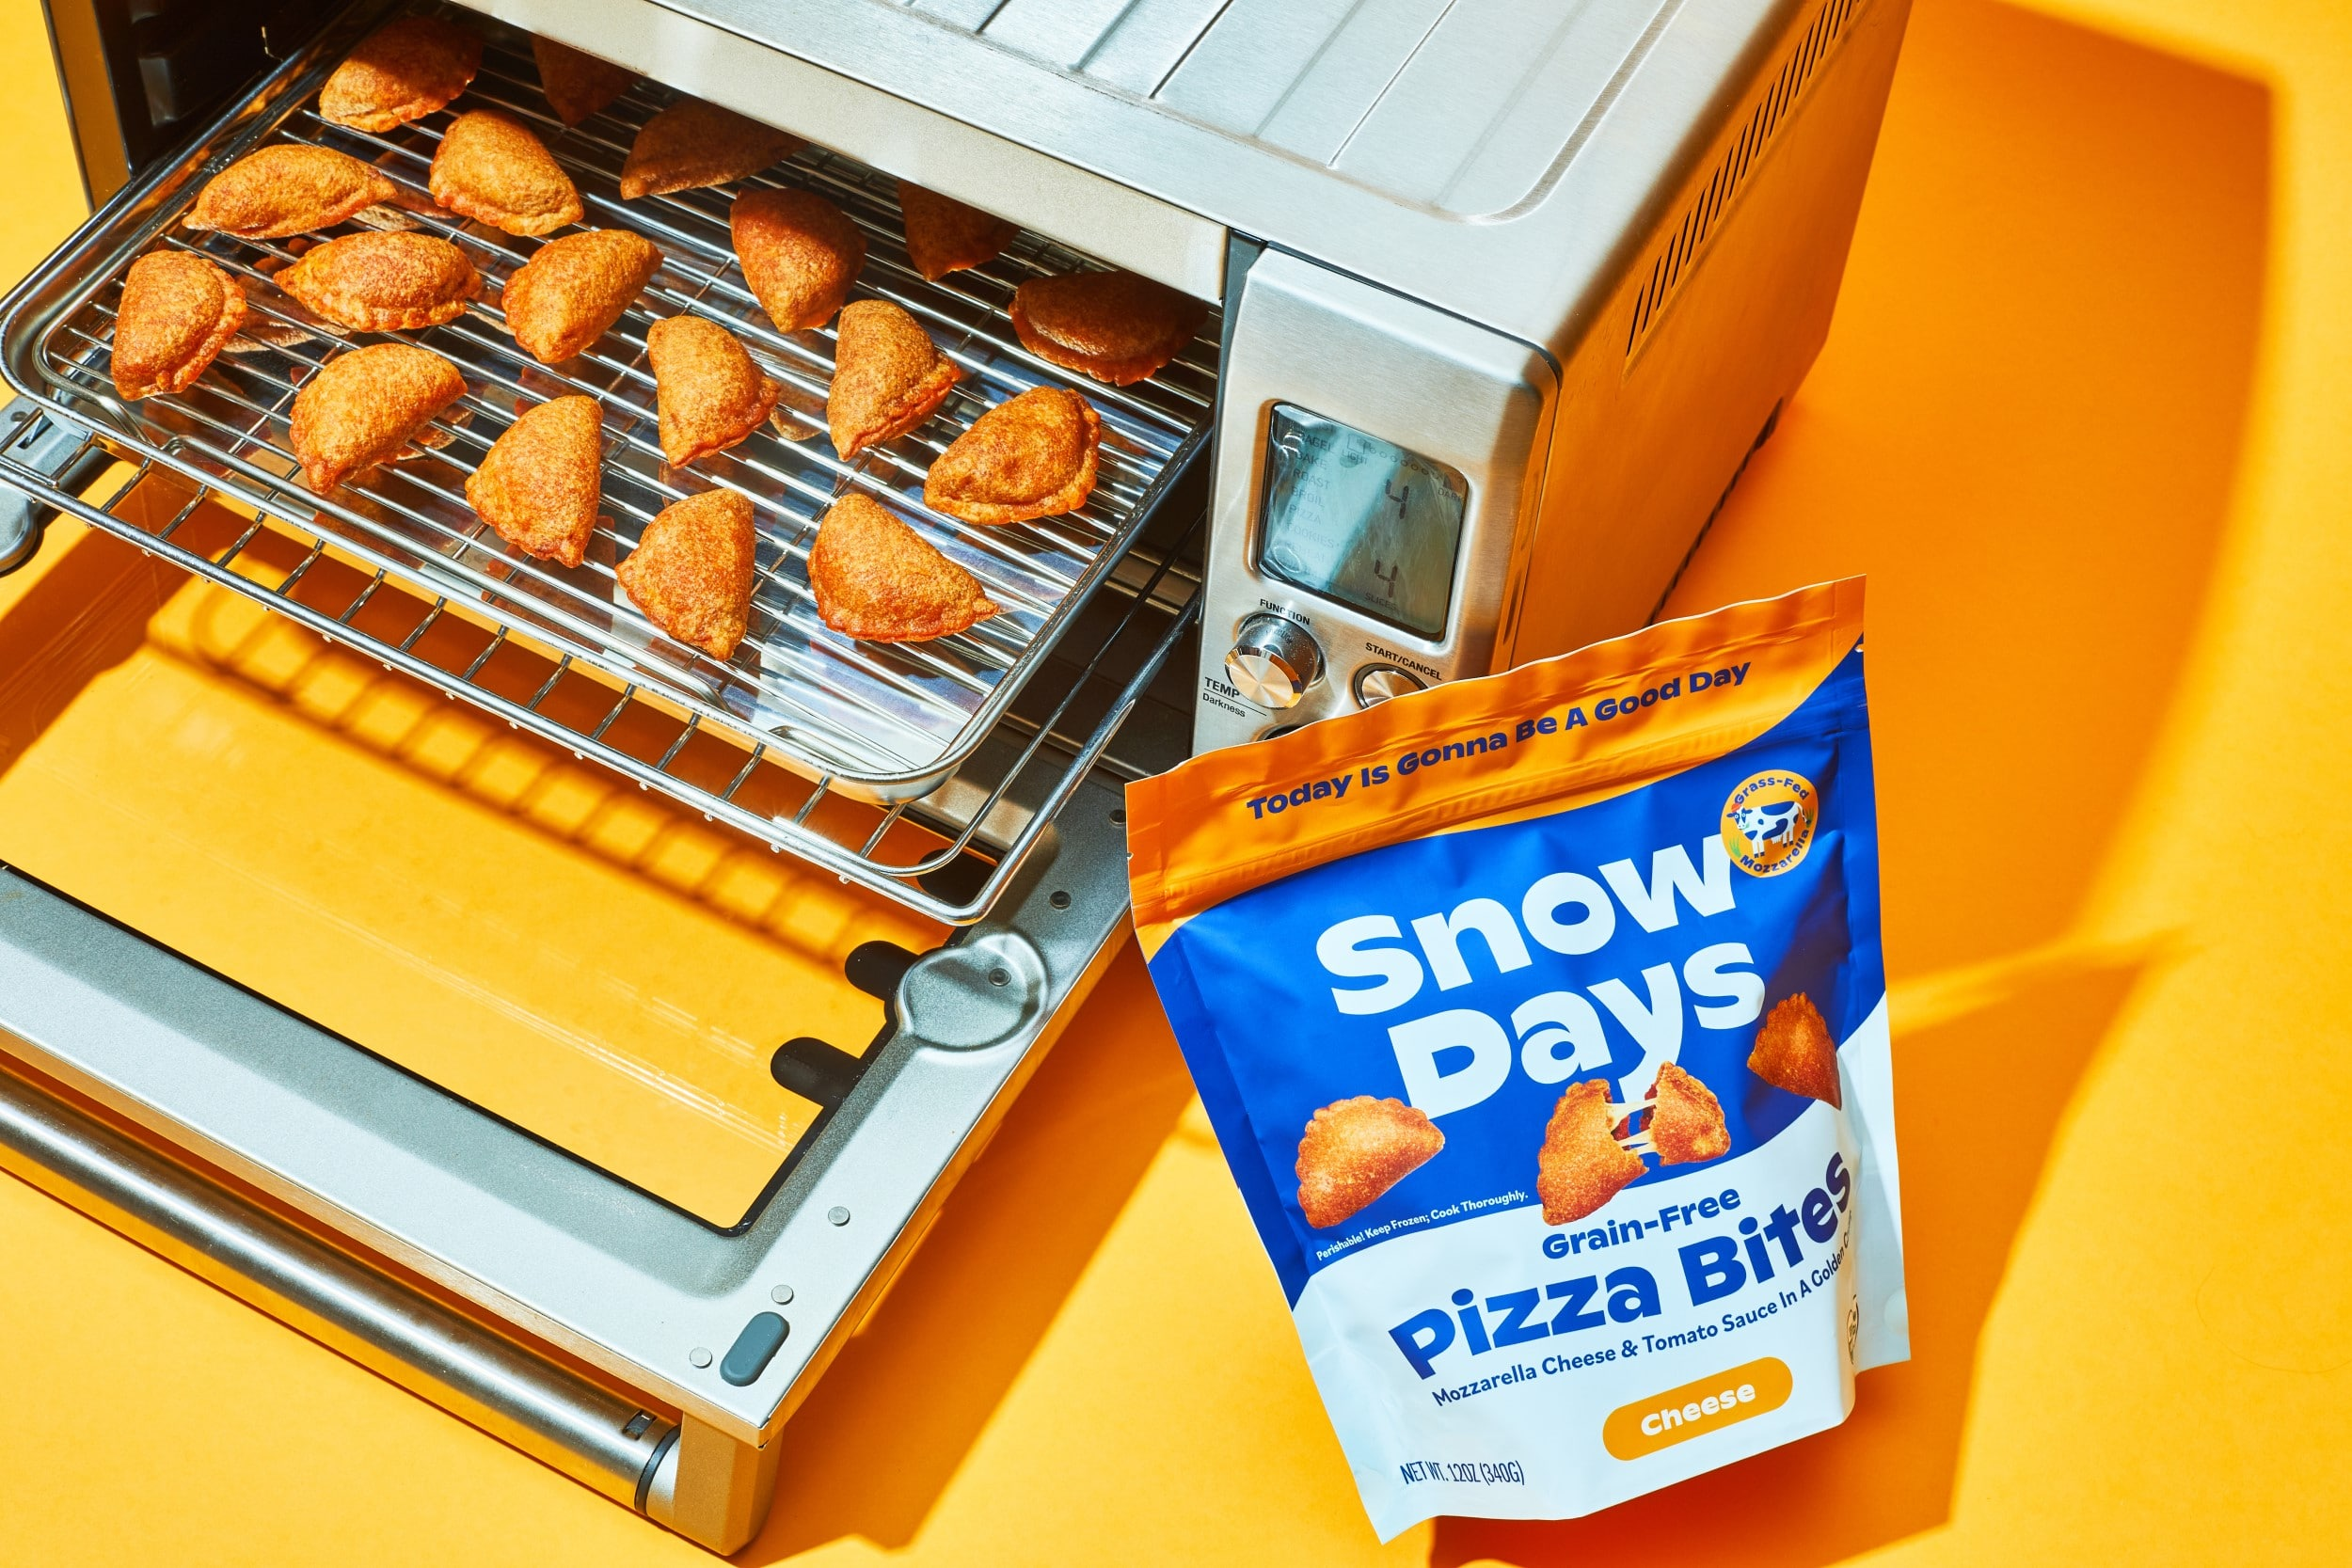 Snow Days gluten-free pizza bites are the healthiest on the market 12